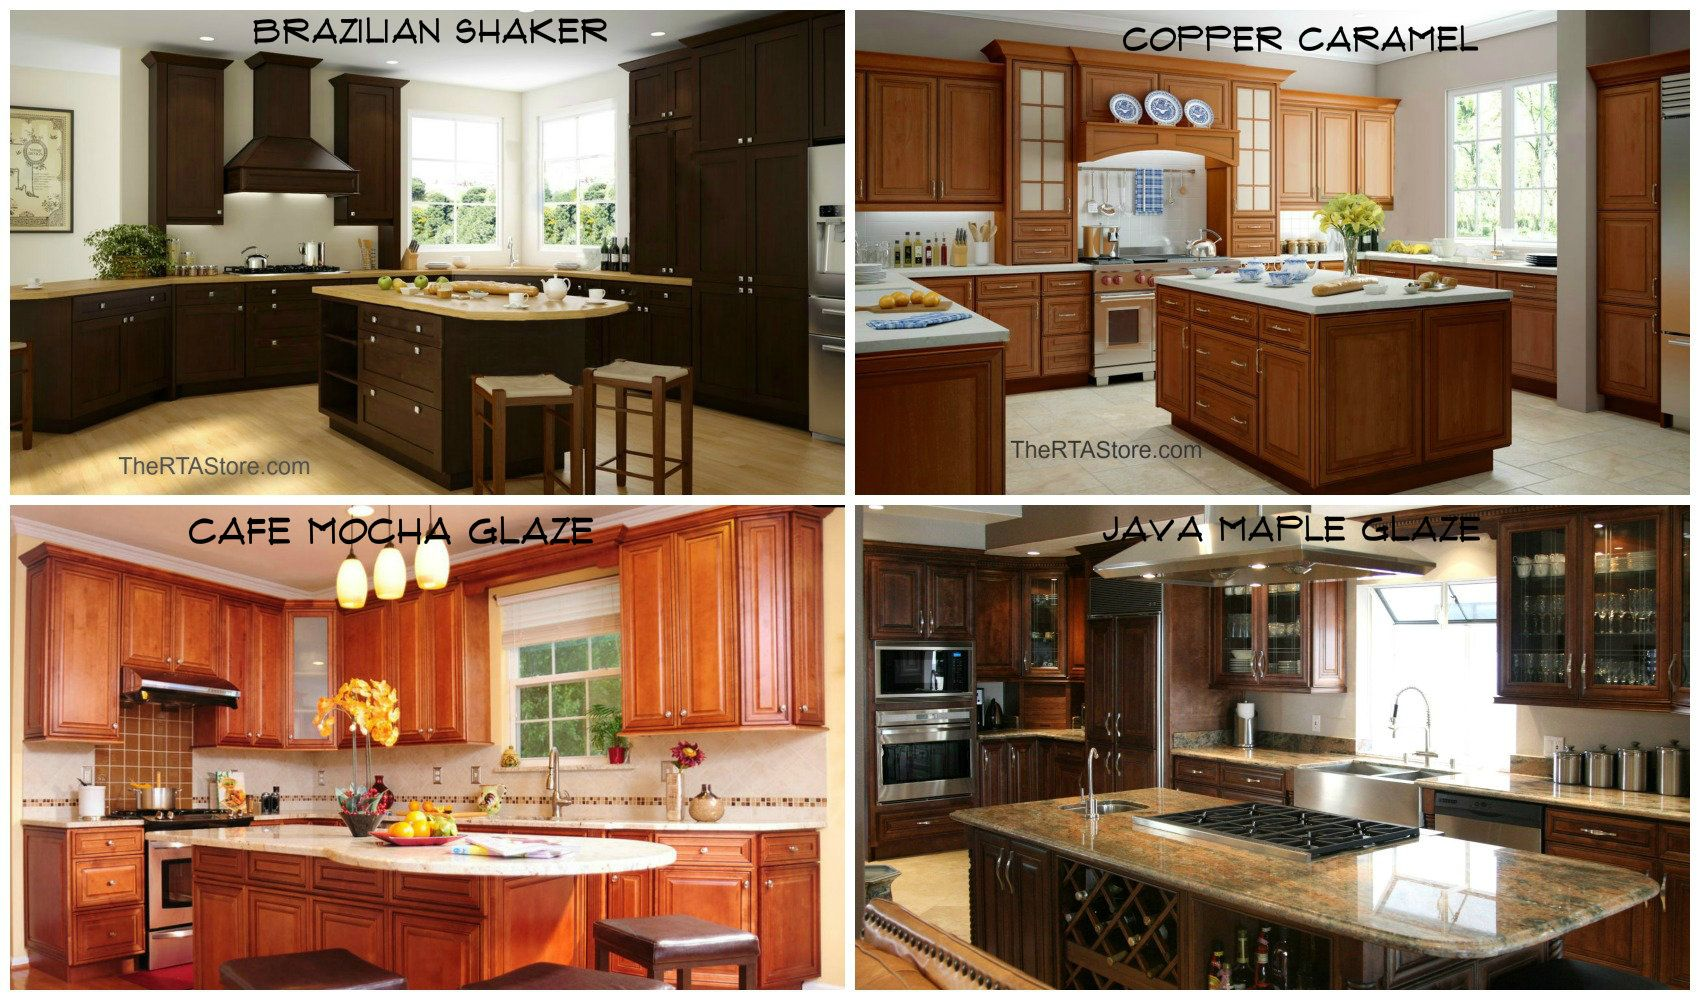 Which Rta Kitchen Is Your Favorite Comment And Let Us Know Then